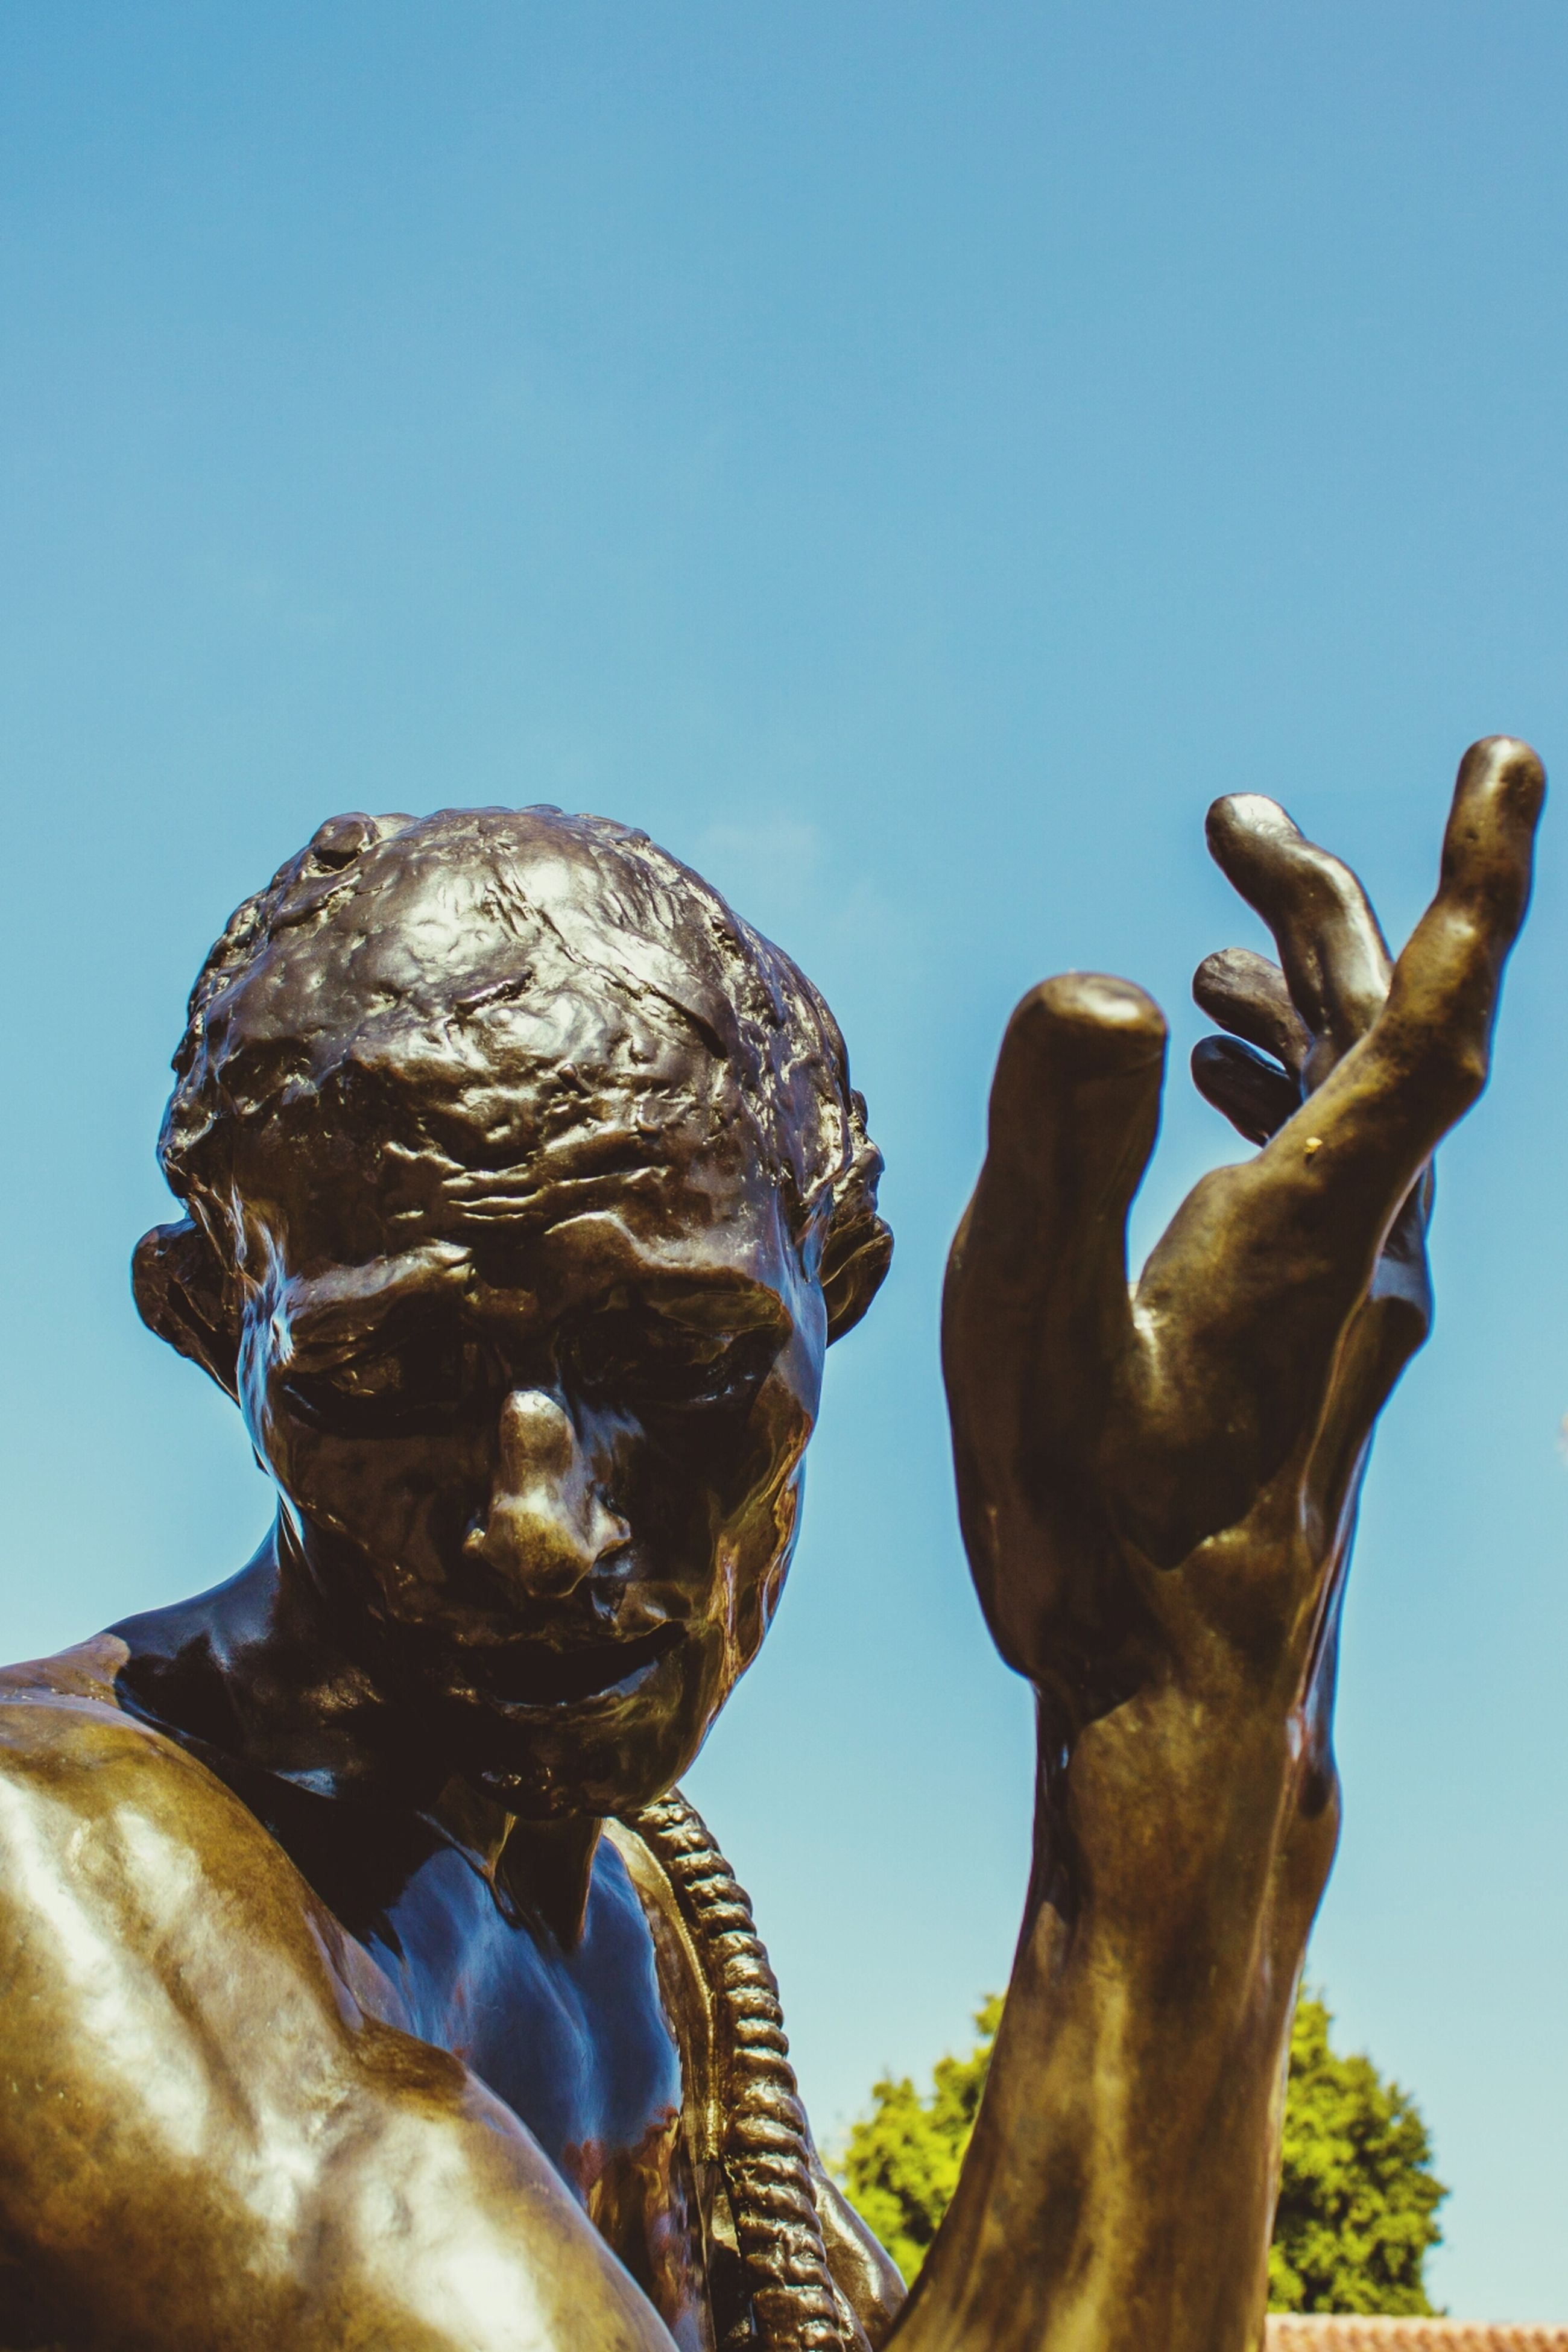 sculpture, statue, human representation, art and craft, art, low angle view, clear sky, creativity, blue, animal representation, copy space, carving - craft product, craft, sky, day, outdoors, no people, sunlight